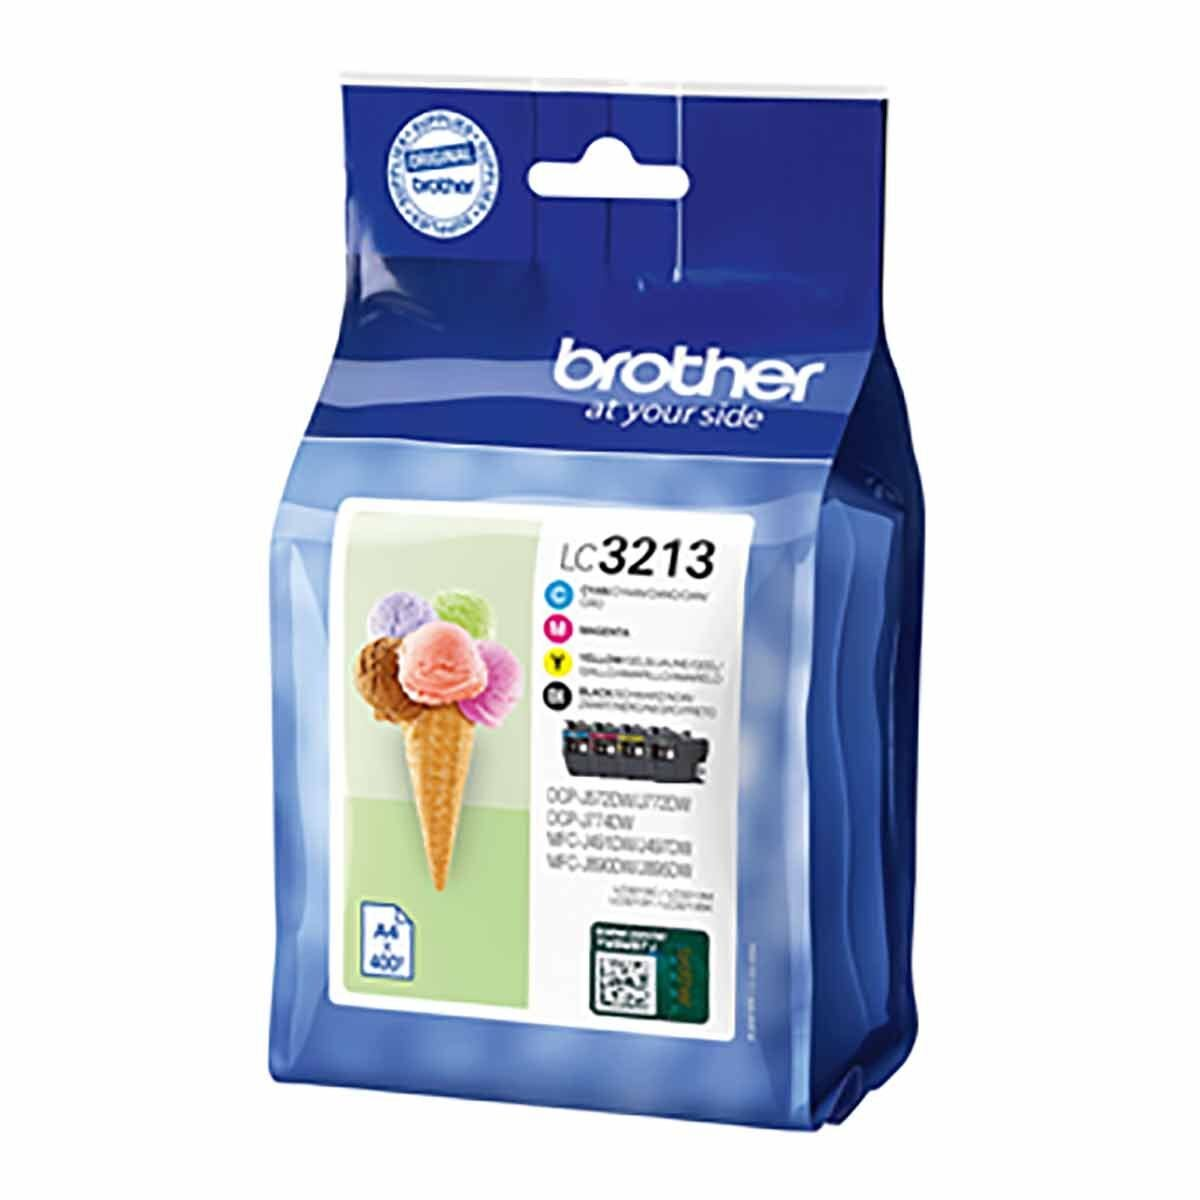 Brother LC3213 Value Pack Original Ink Cartridges